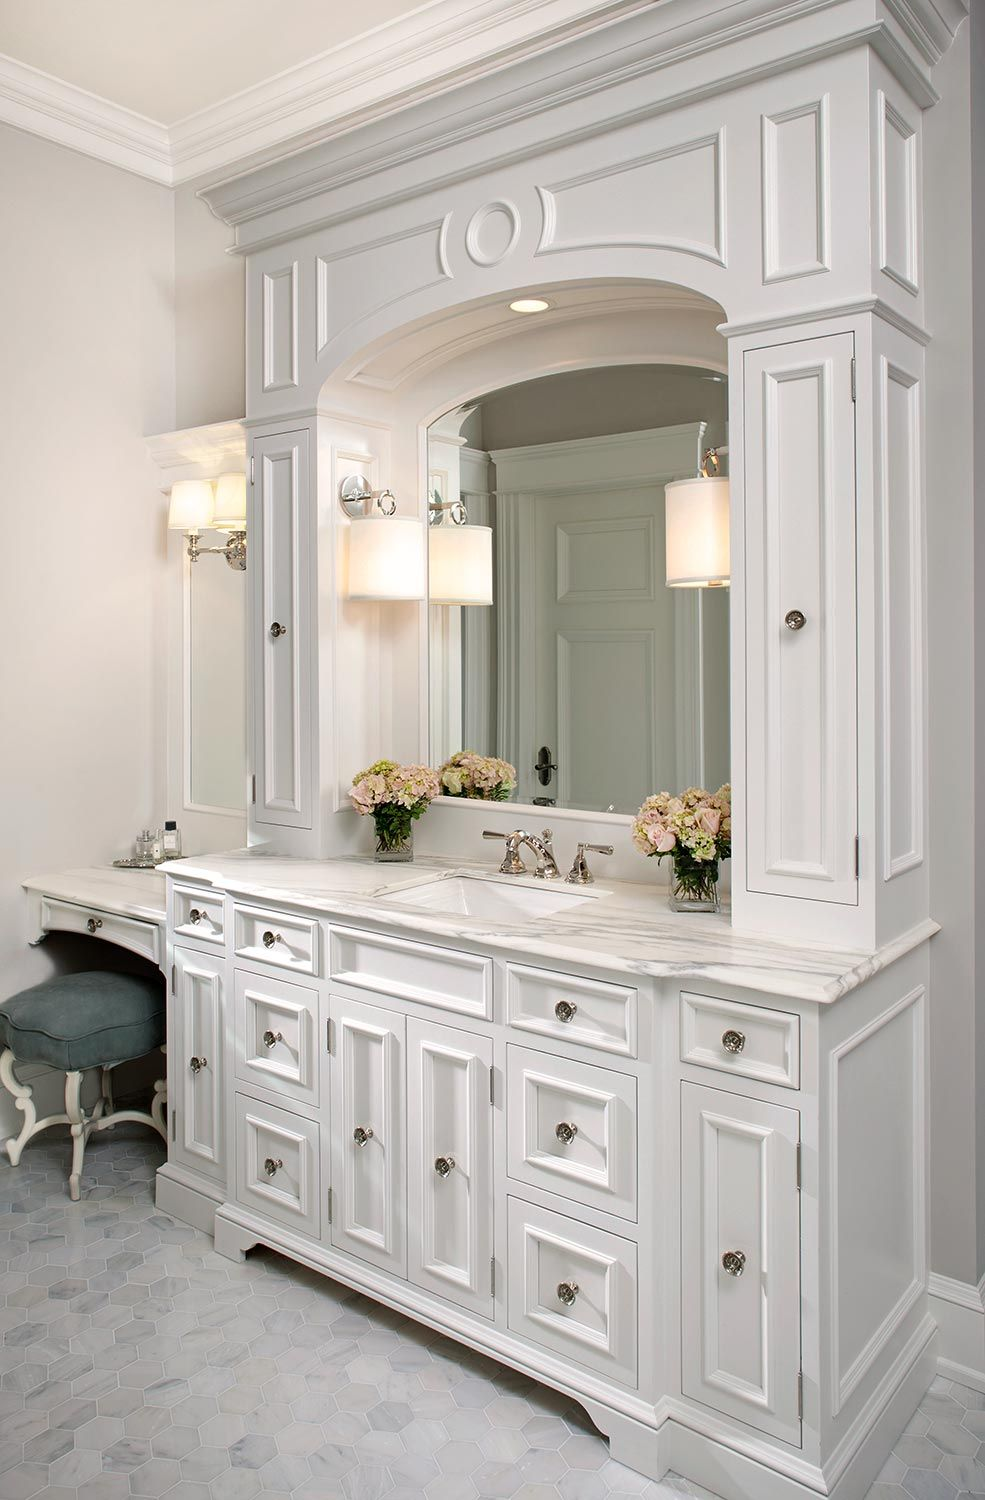 Bathroom Vanities With Sitting Area The Sitting Room Is An Interior Design Firm And Home Boutique And